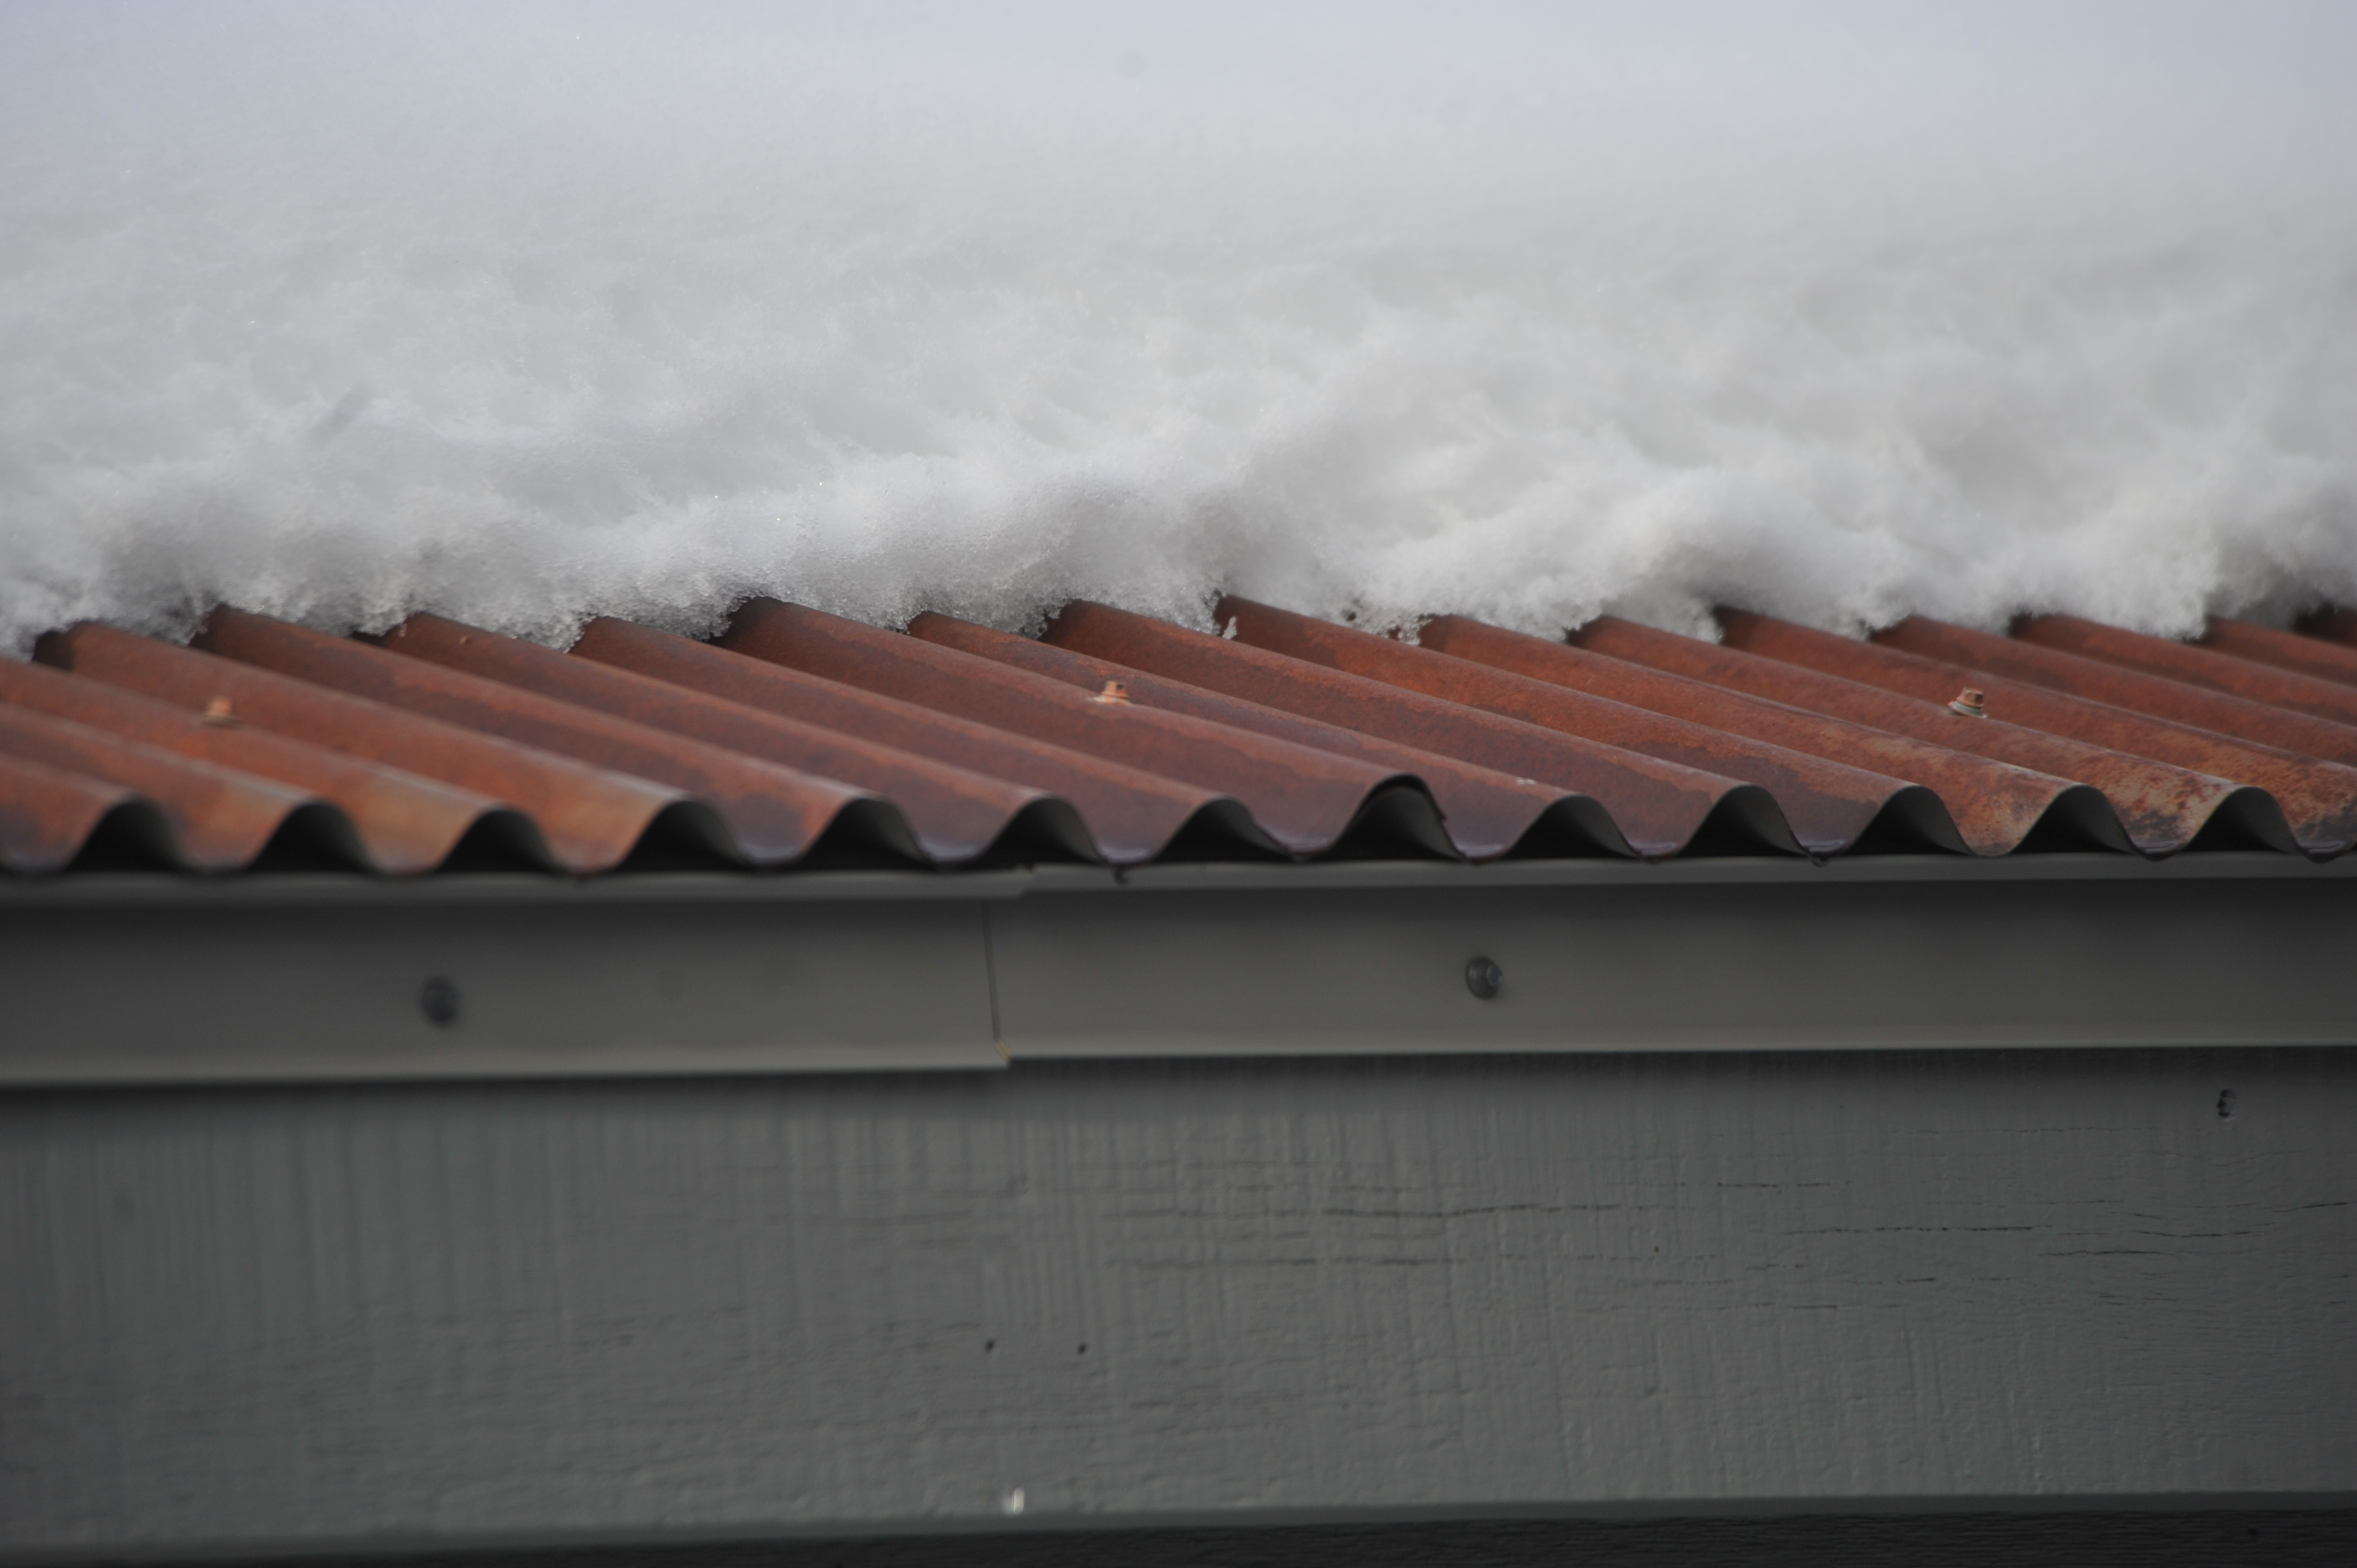 HotEdge Rail Was Installed On The Edge Of This Corrugated Metal Roof.  Sufficient Heat Transfer Exist Between The Compression Of The Commercial  Grade Heat ...